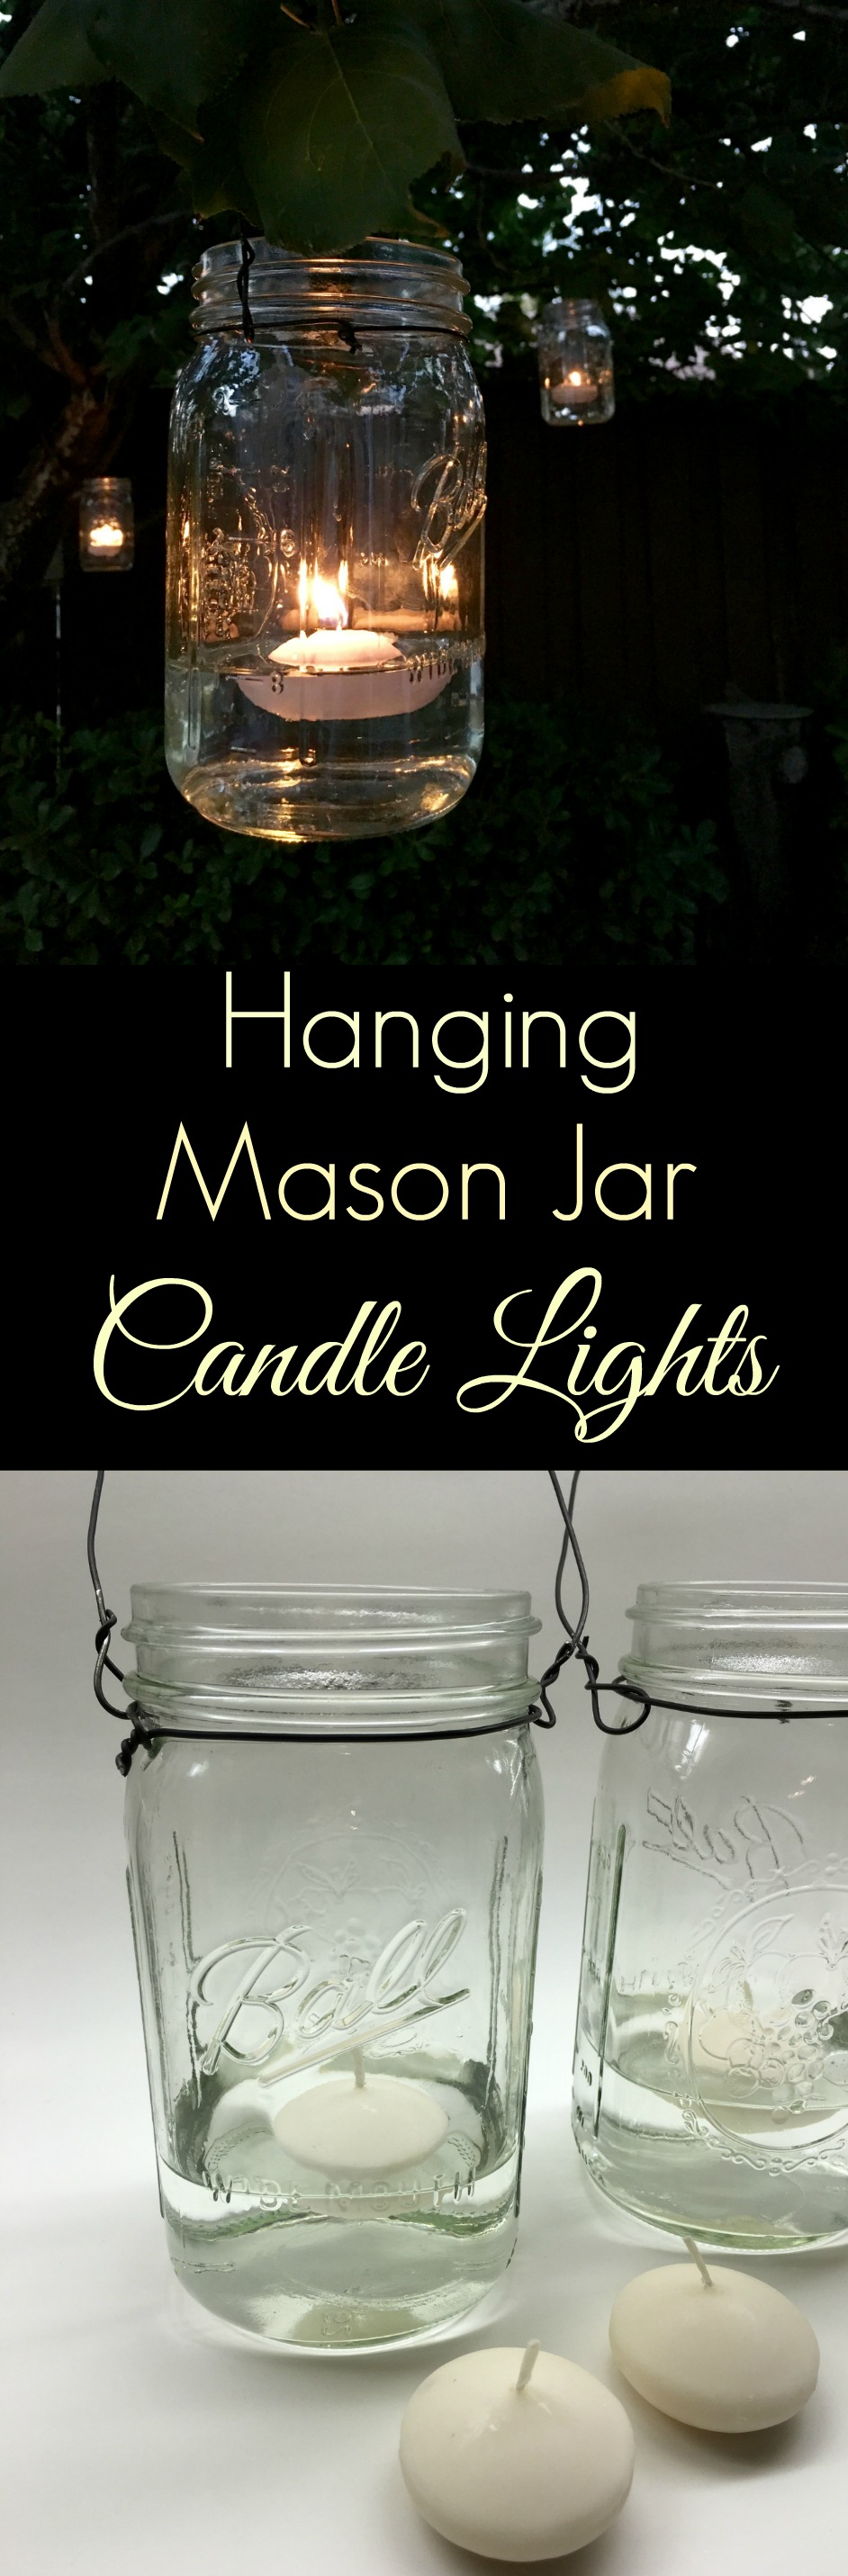 Hanging Mason Jar Candle Lights | Simple Sojourns